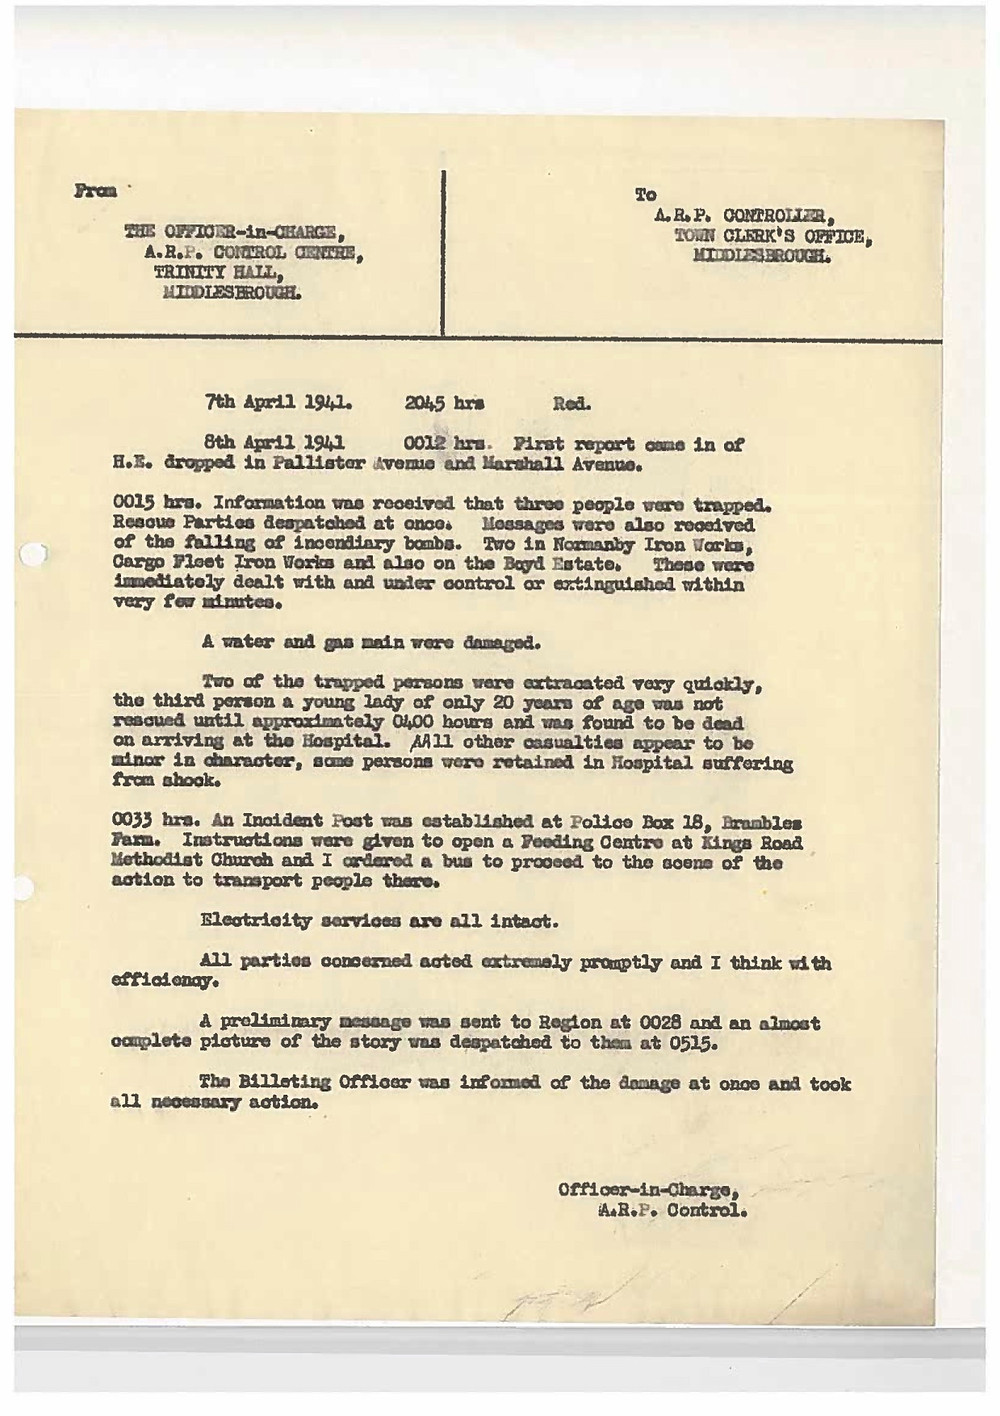 The incident report detailing the bombing on Pallister Avenue April 8 1941